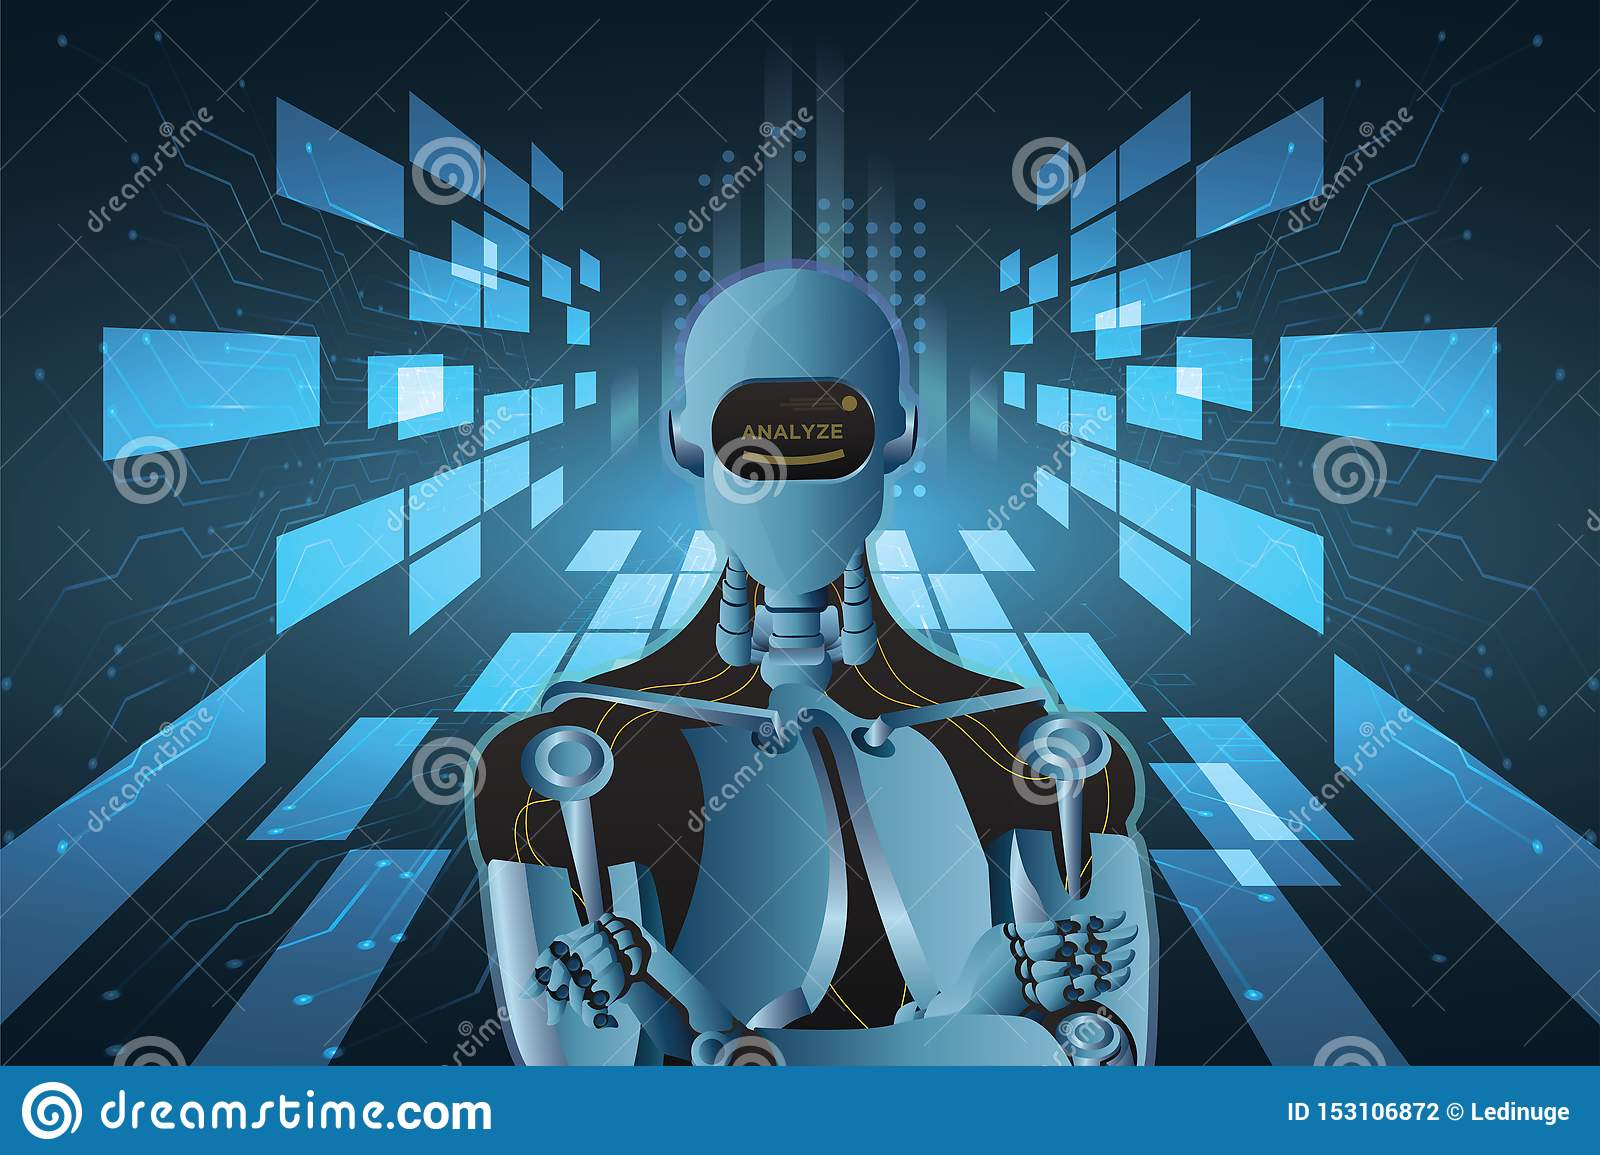 Futuristic Artificial Intelligence Robot Style Abstract Vector Illustration